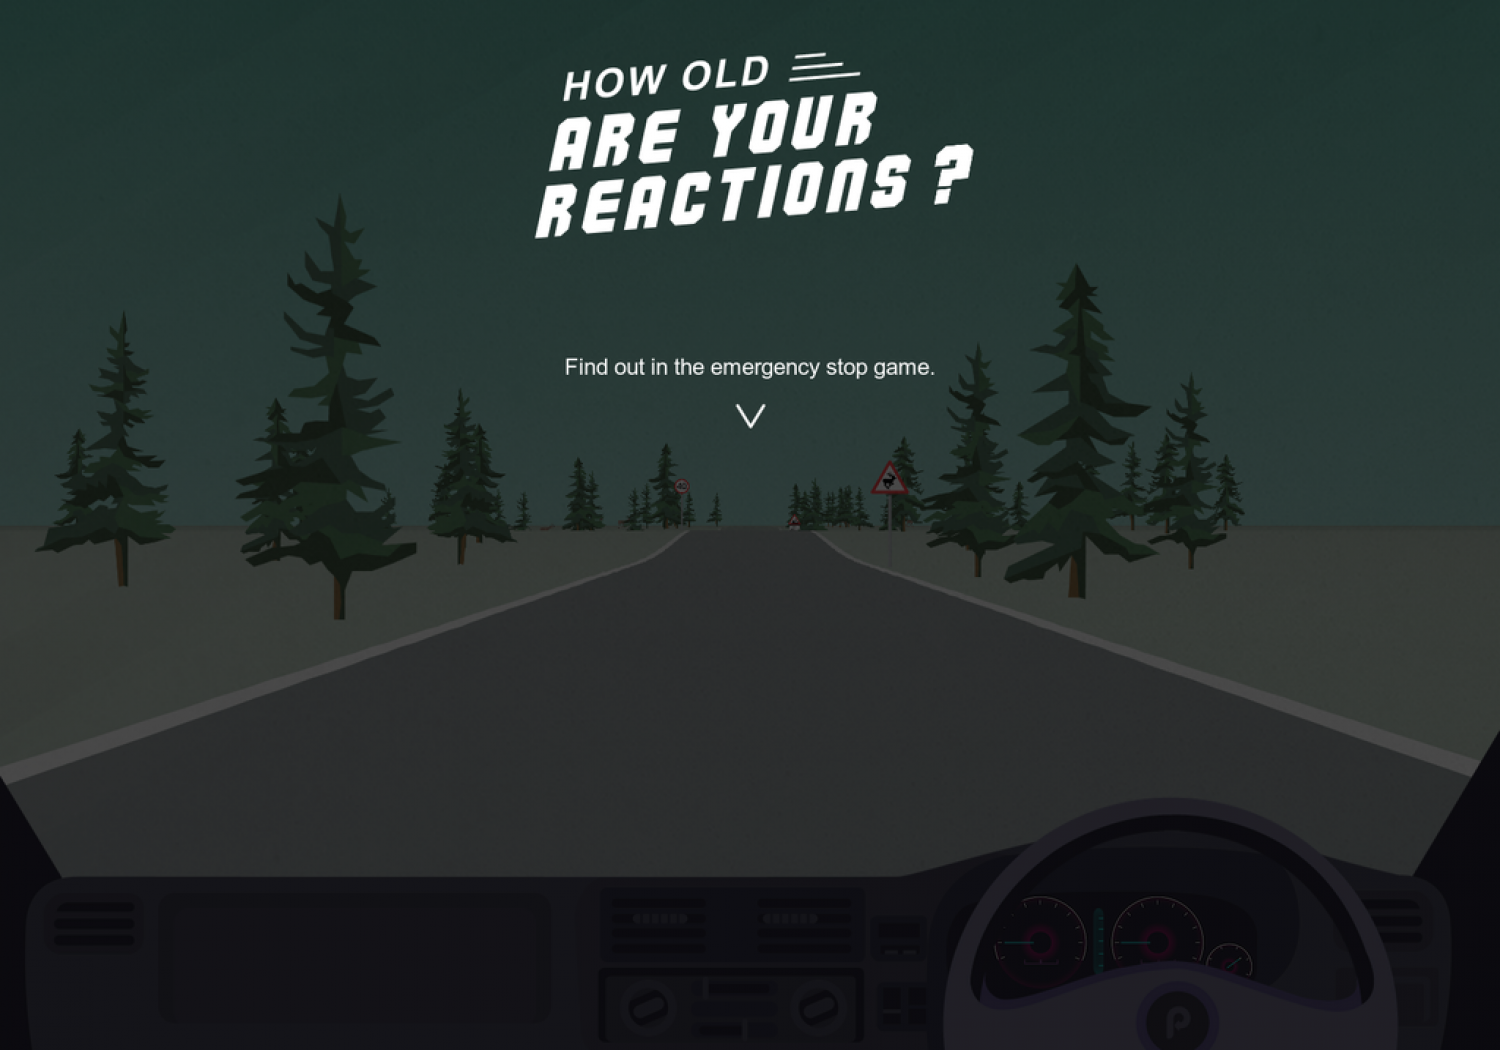 How Old Are Your Reactions? Infographic